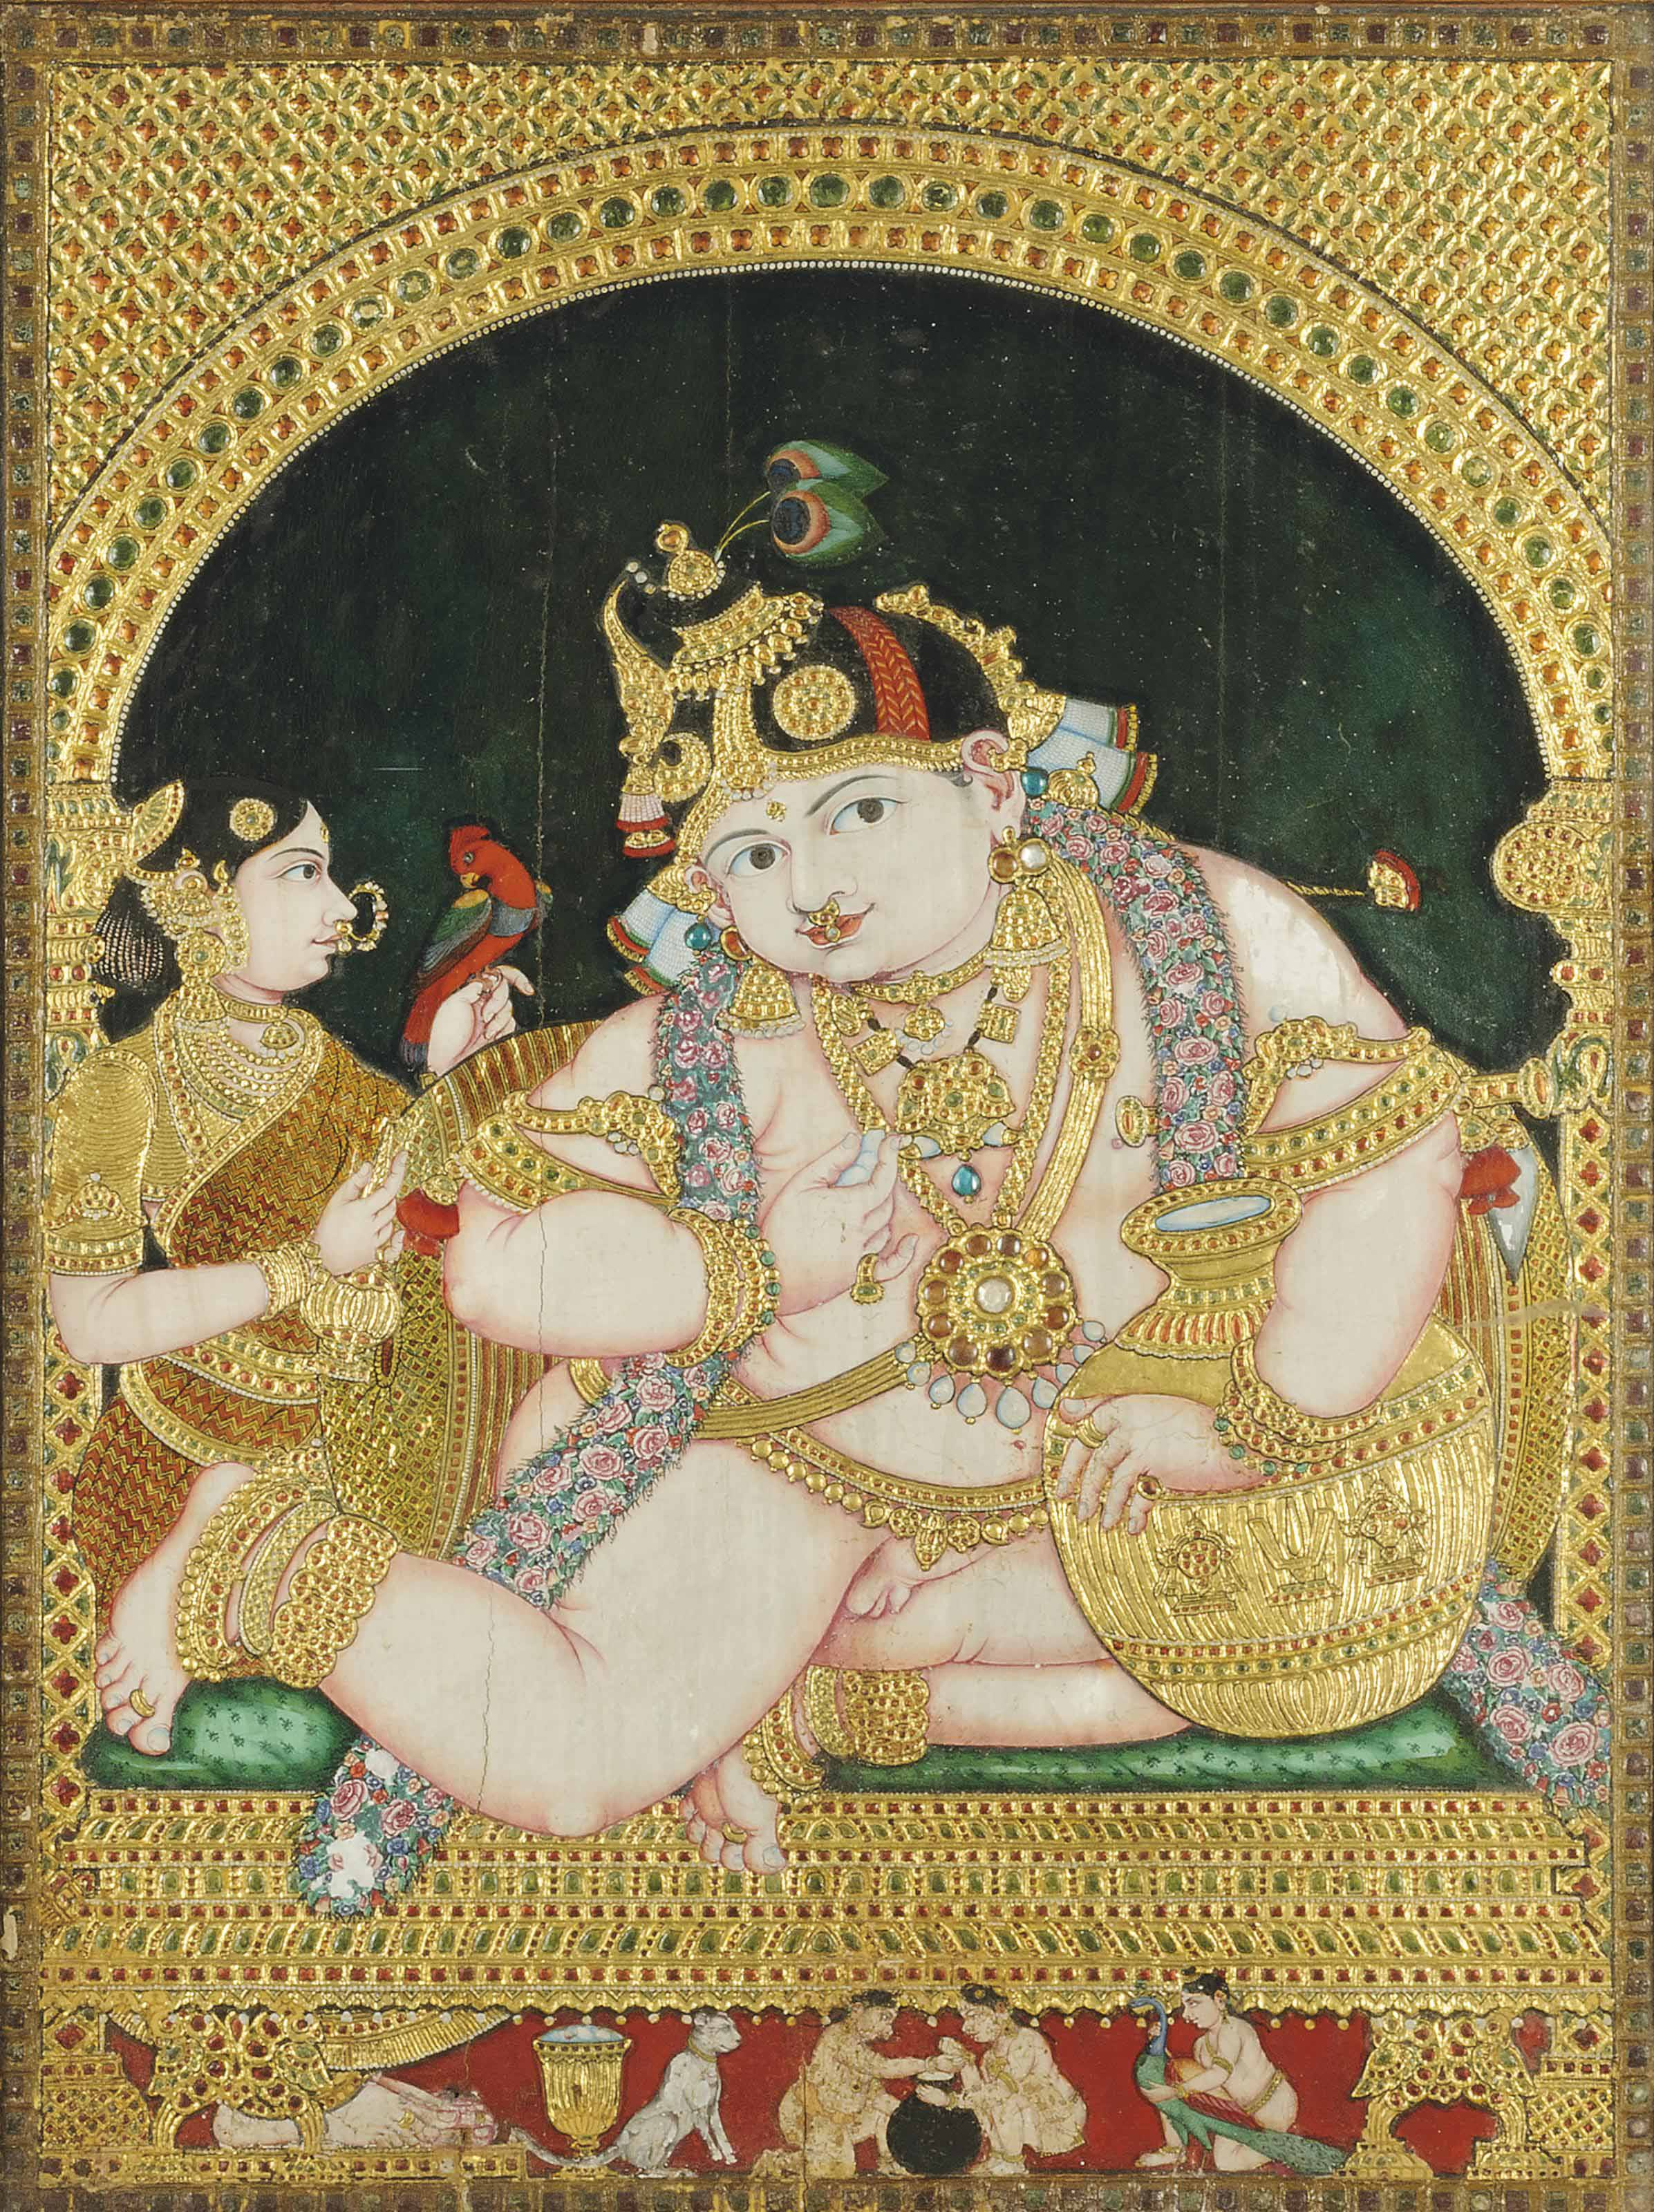 THE CHILD KRISHNA AS THE BUTTE